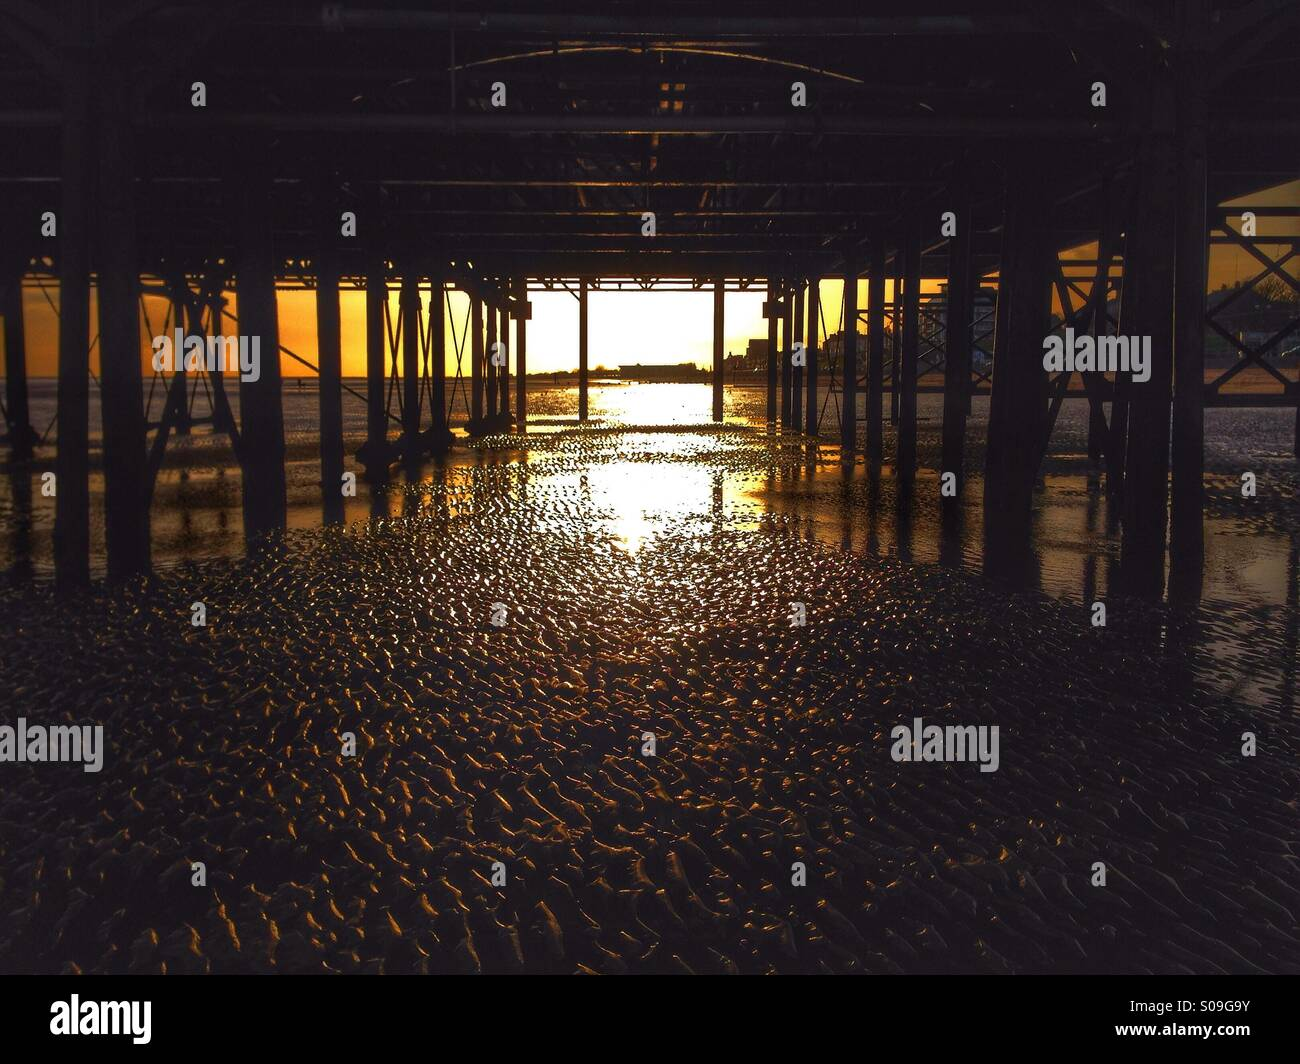 Underneath a seaside pier at sunrise. - Stock Image